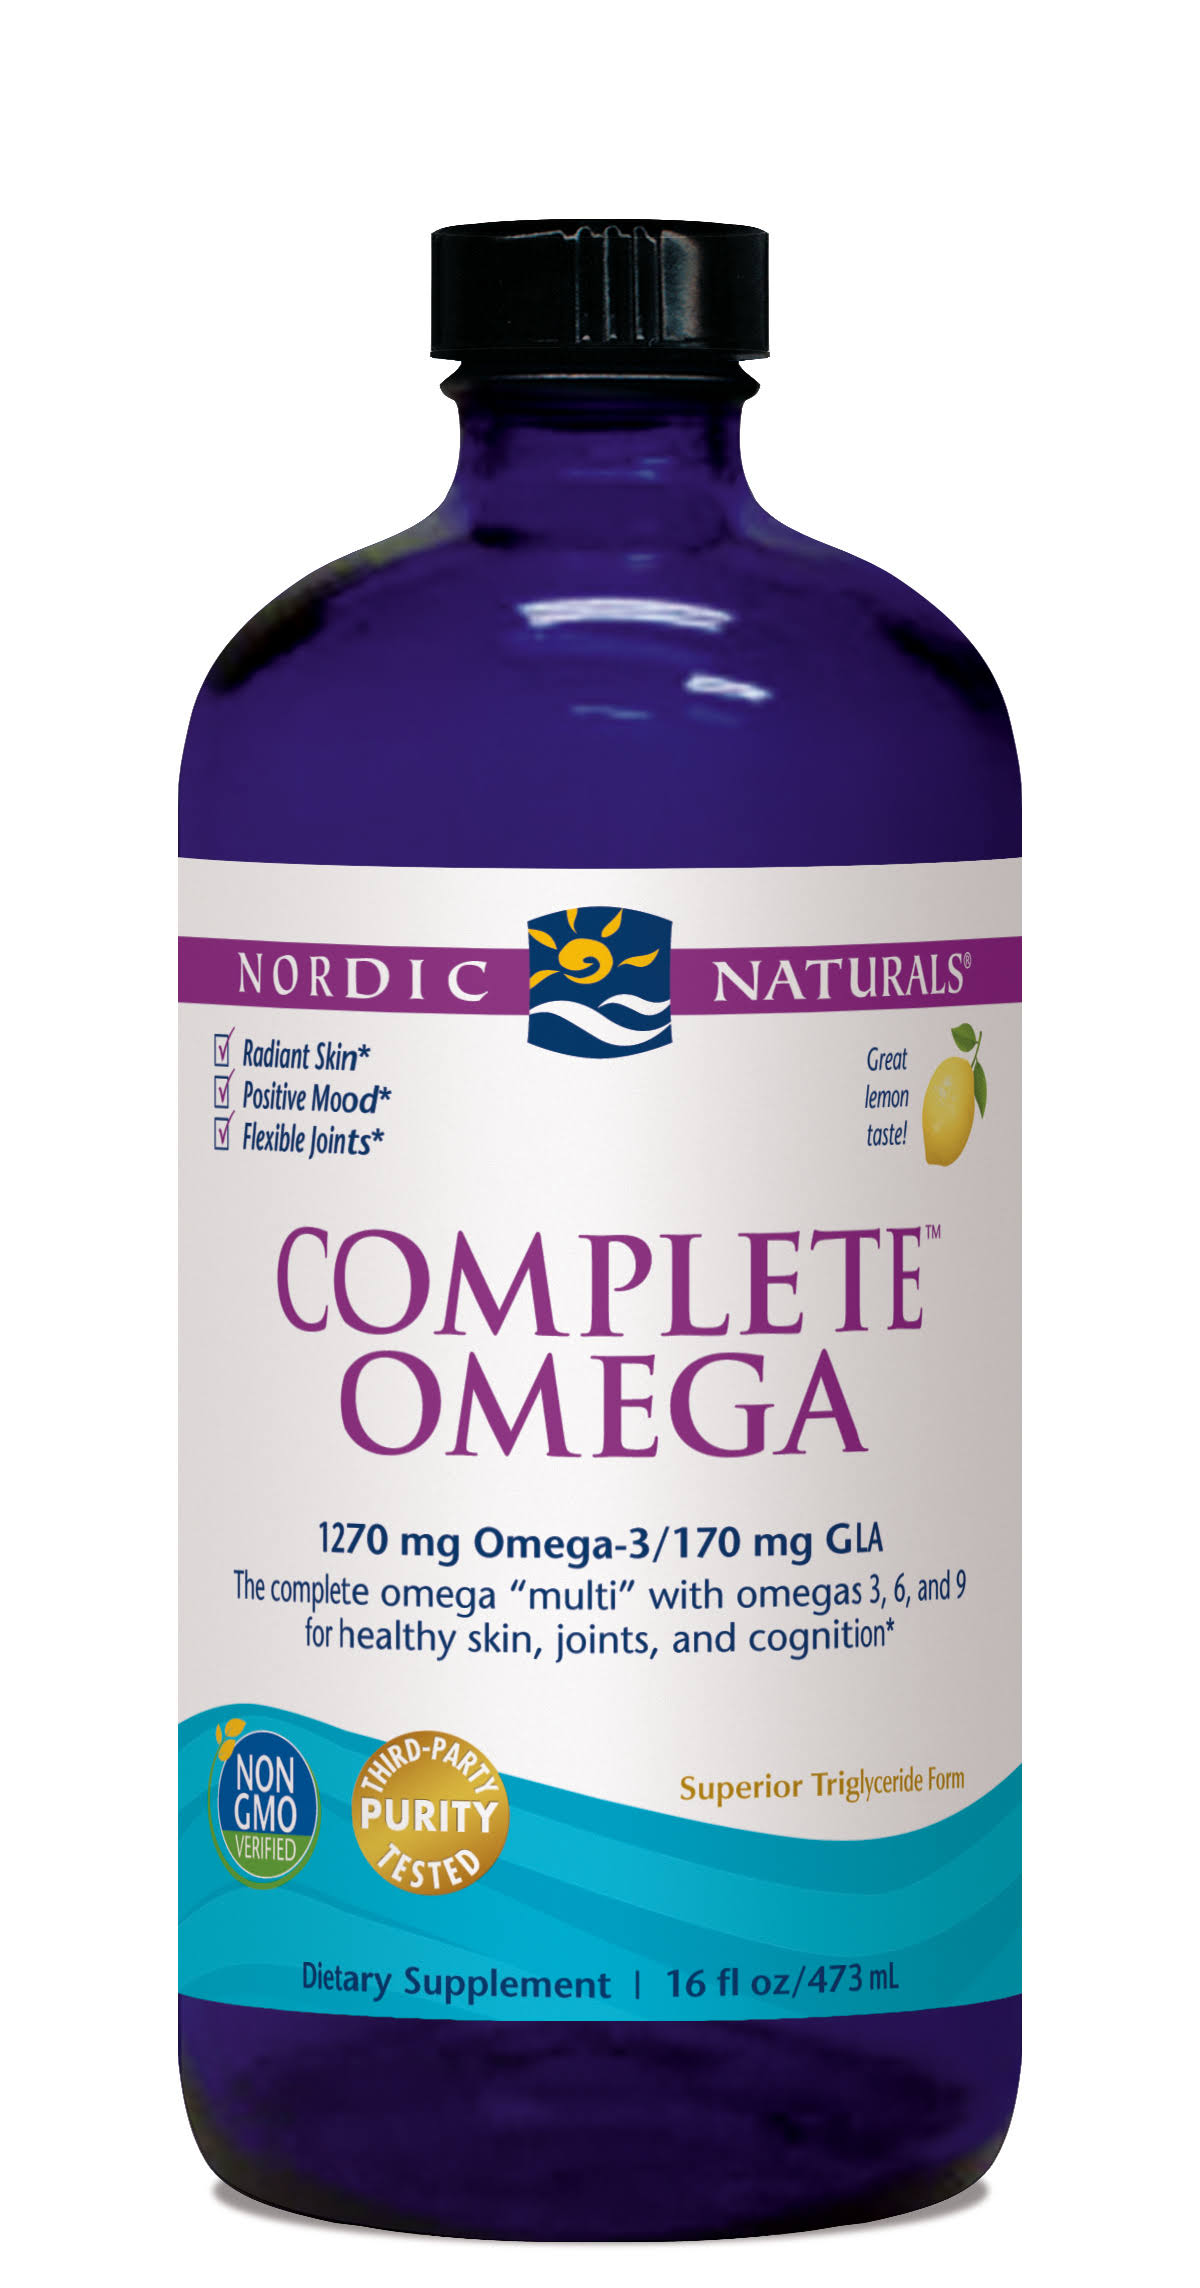 Nordic Naturals Complete Omega Dietary Supplement - 16oz